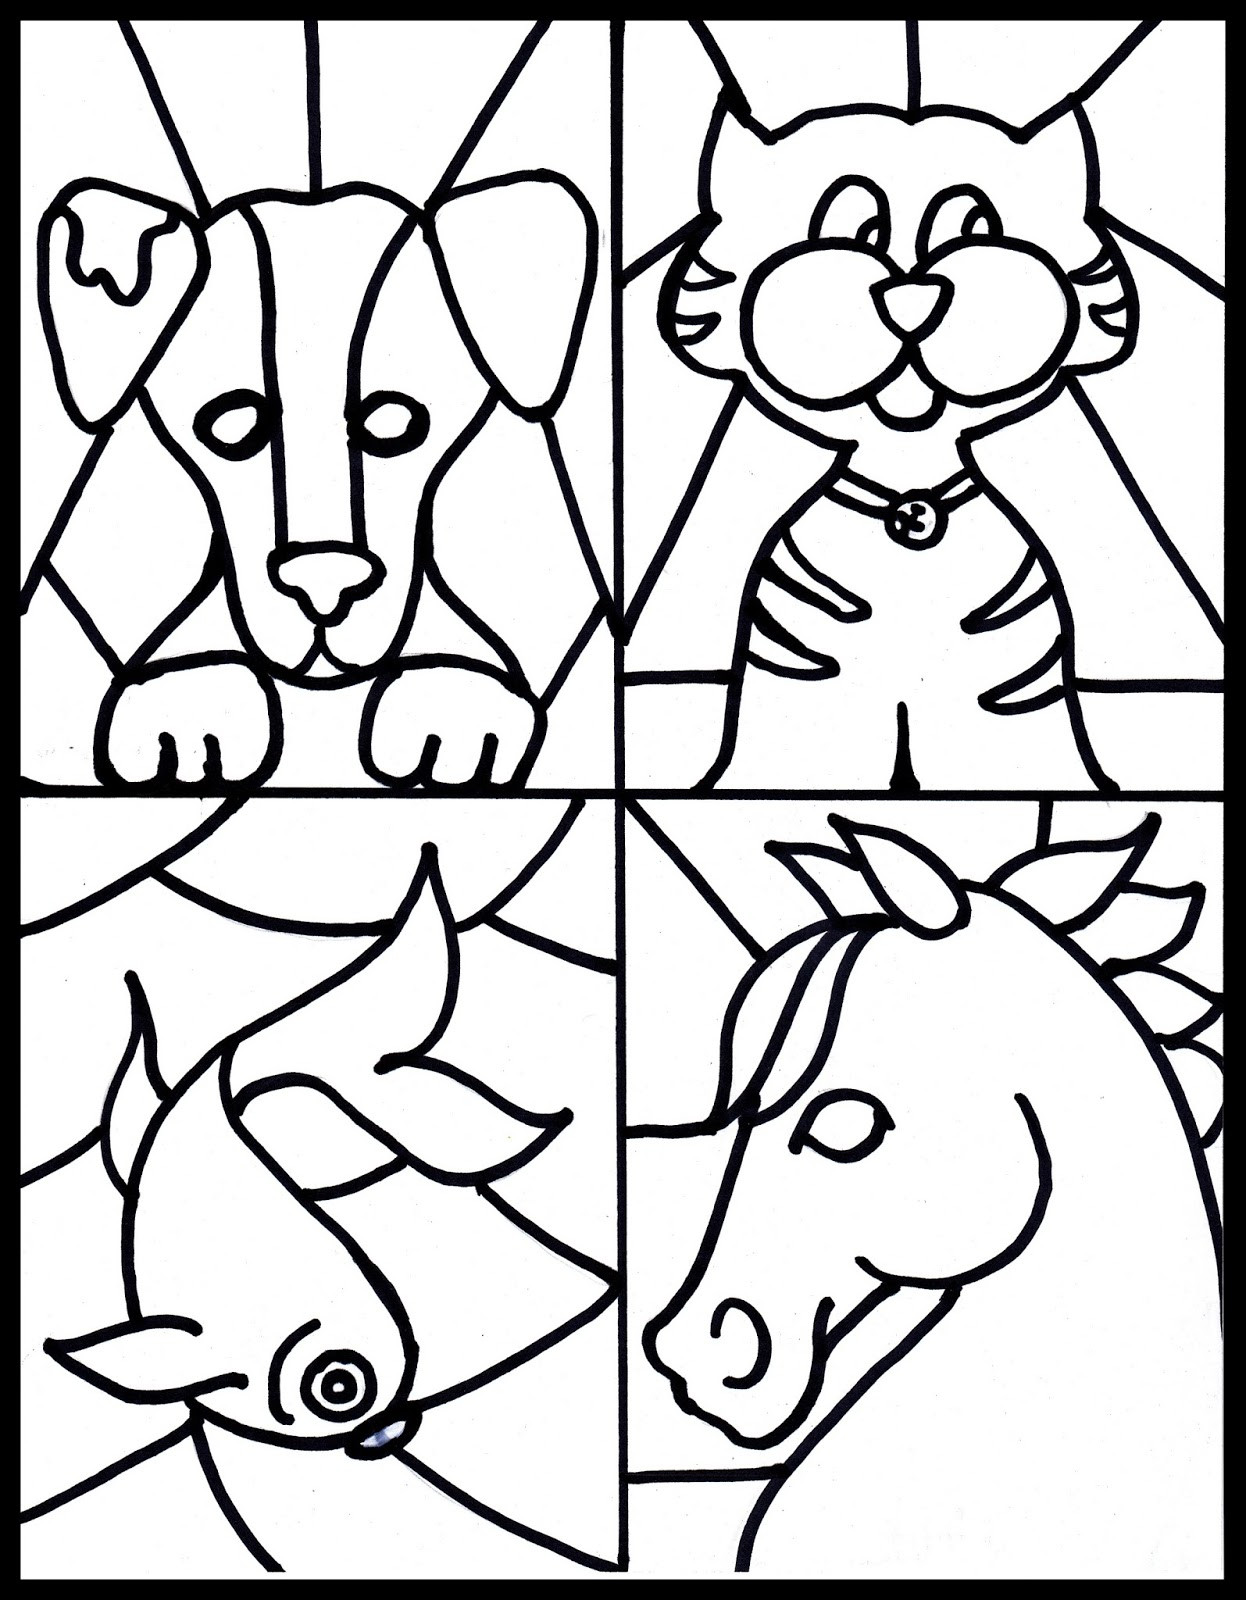 Best ideas about Stained Glass Free Coloring Pages . Save or Pin Animal Stained Glass Coloring Pages coloringsuite Now.